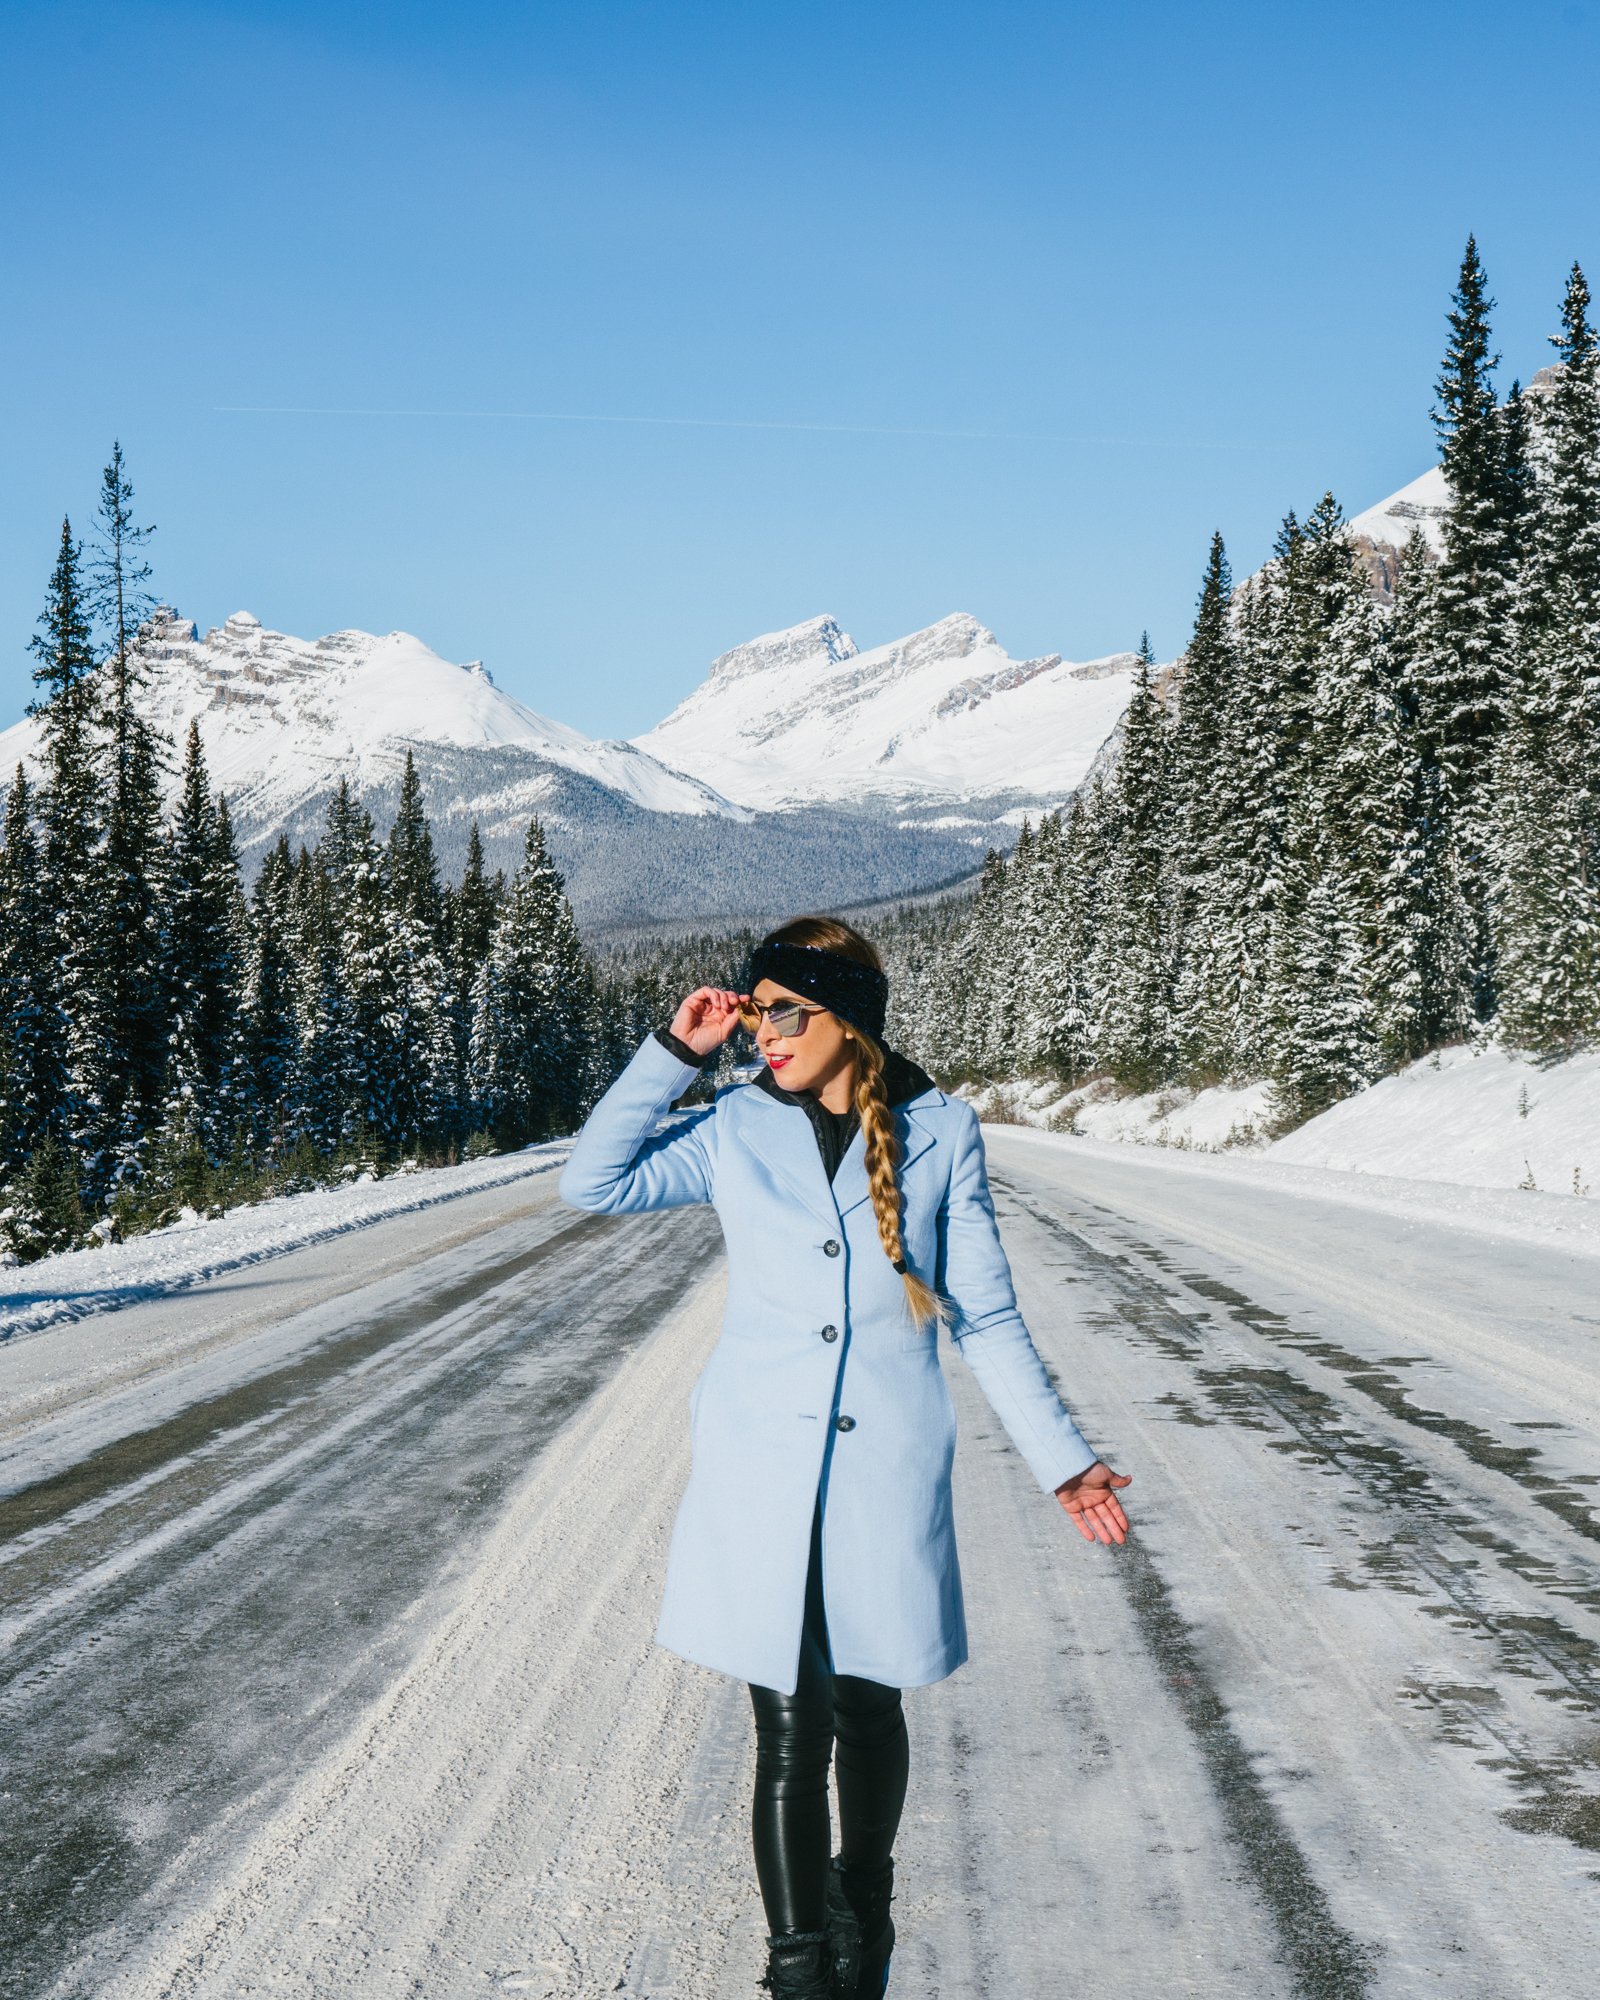 Banff National Park Winter Travel Guide